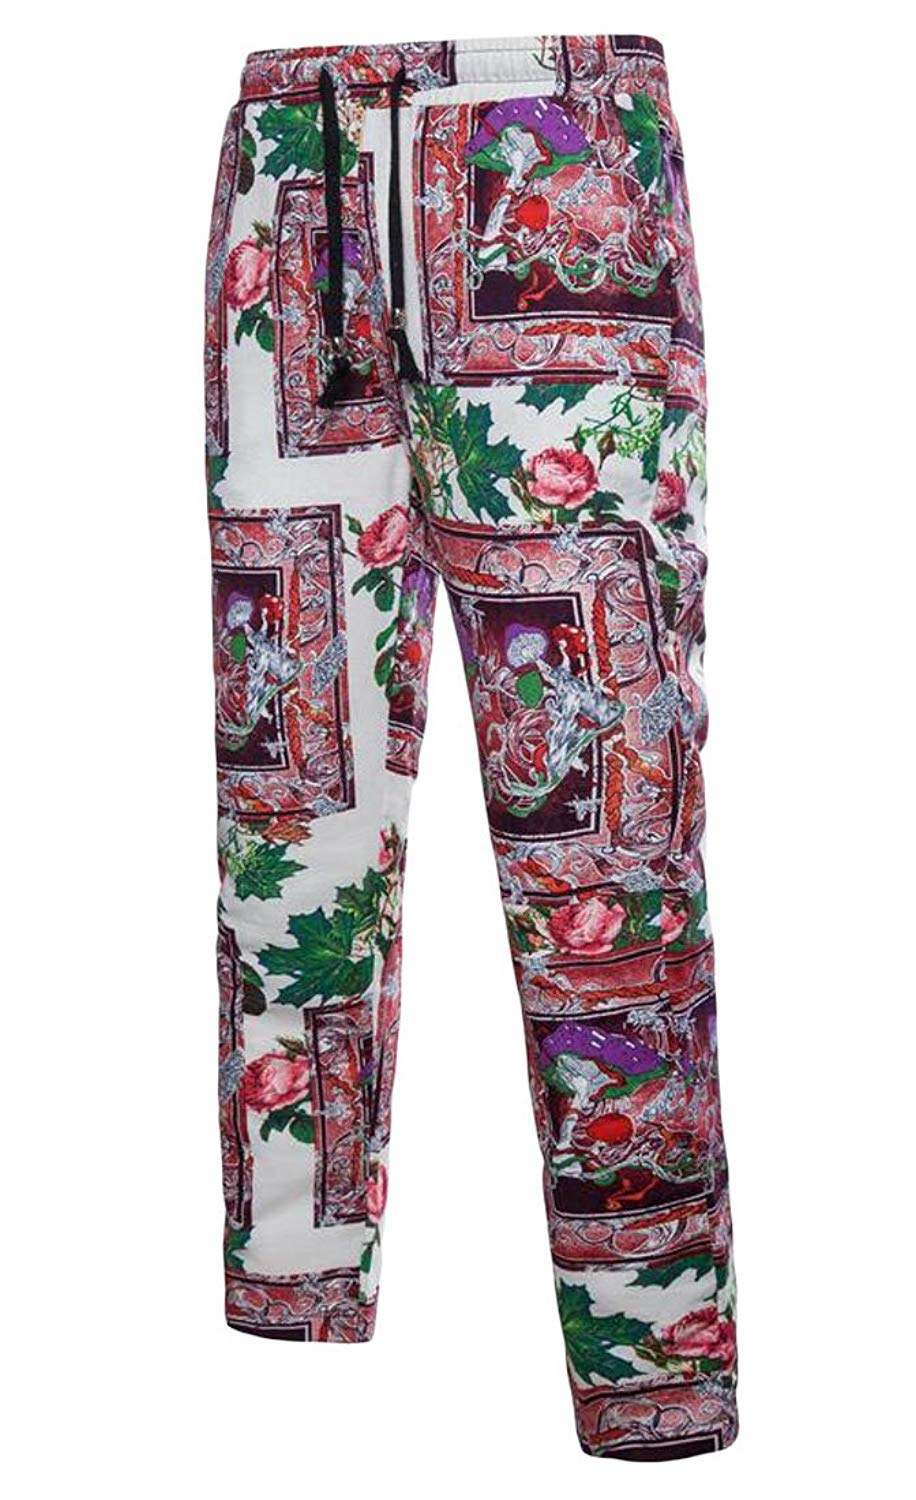 Jofemuho Mens Casual Ethnic Drawstring Loose Fit Floral Print Cotton Linen Pants Trousers